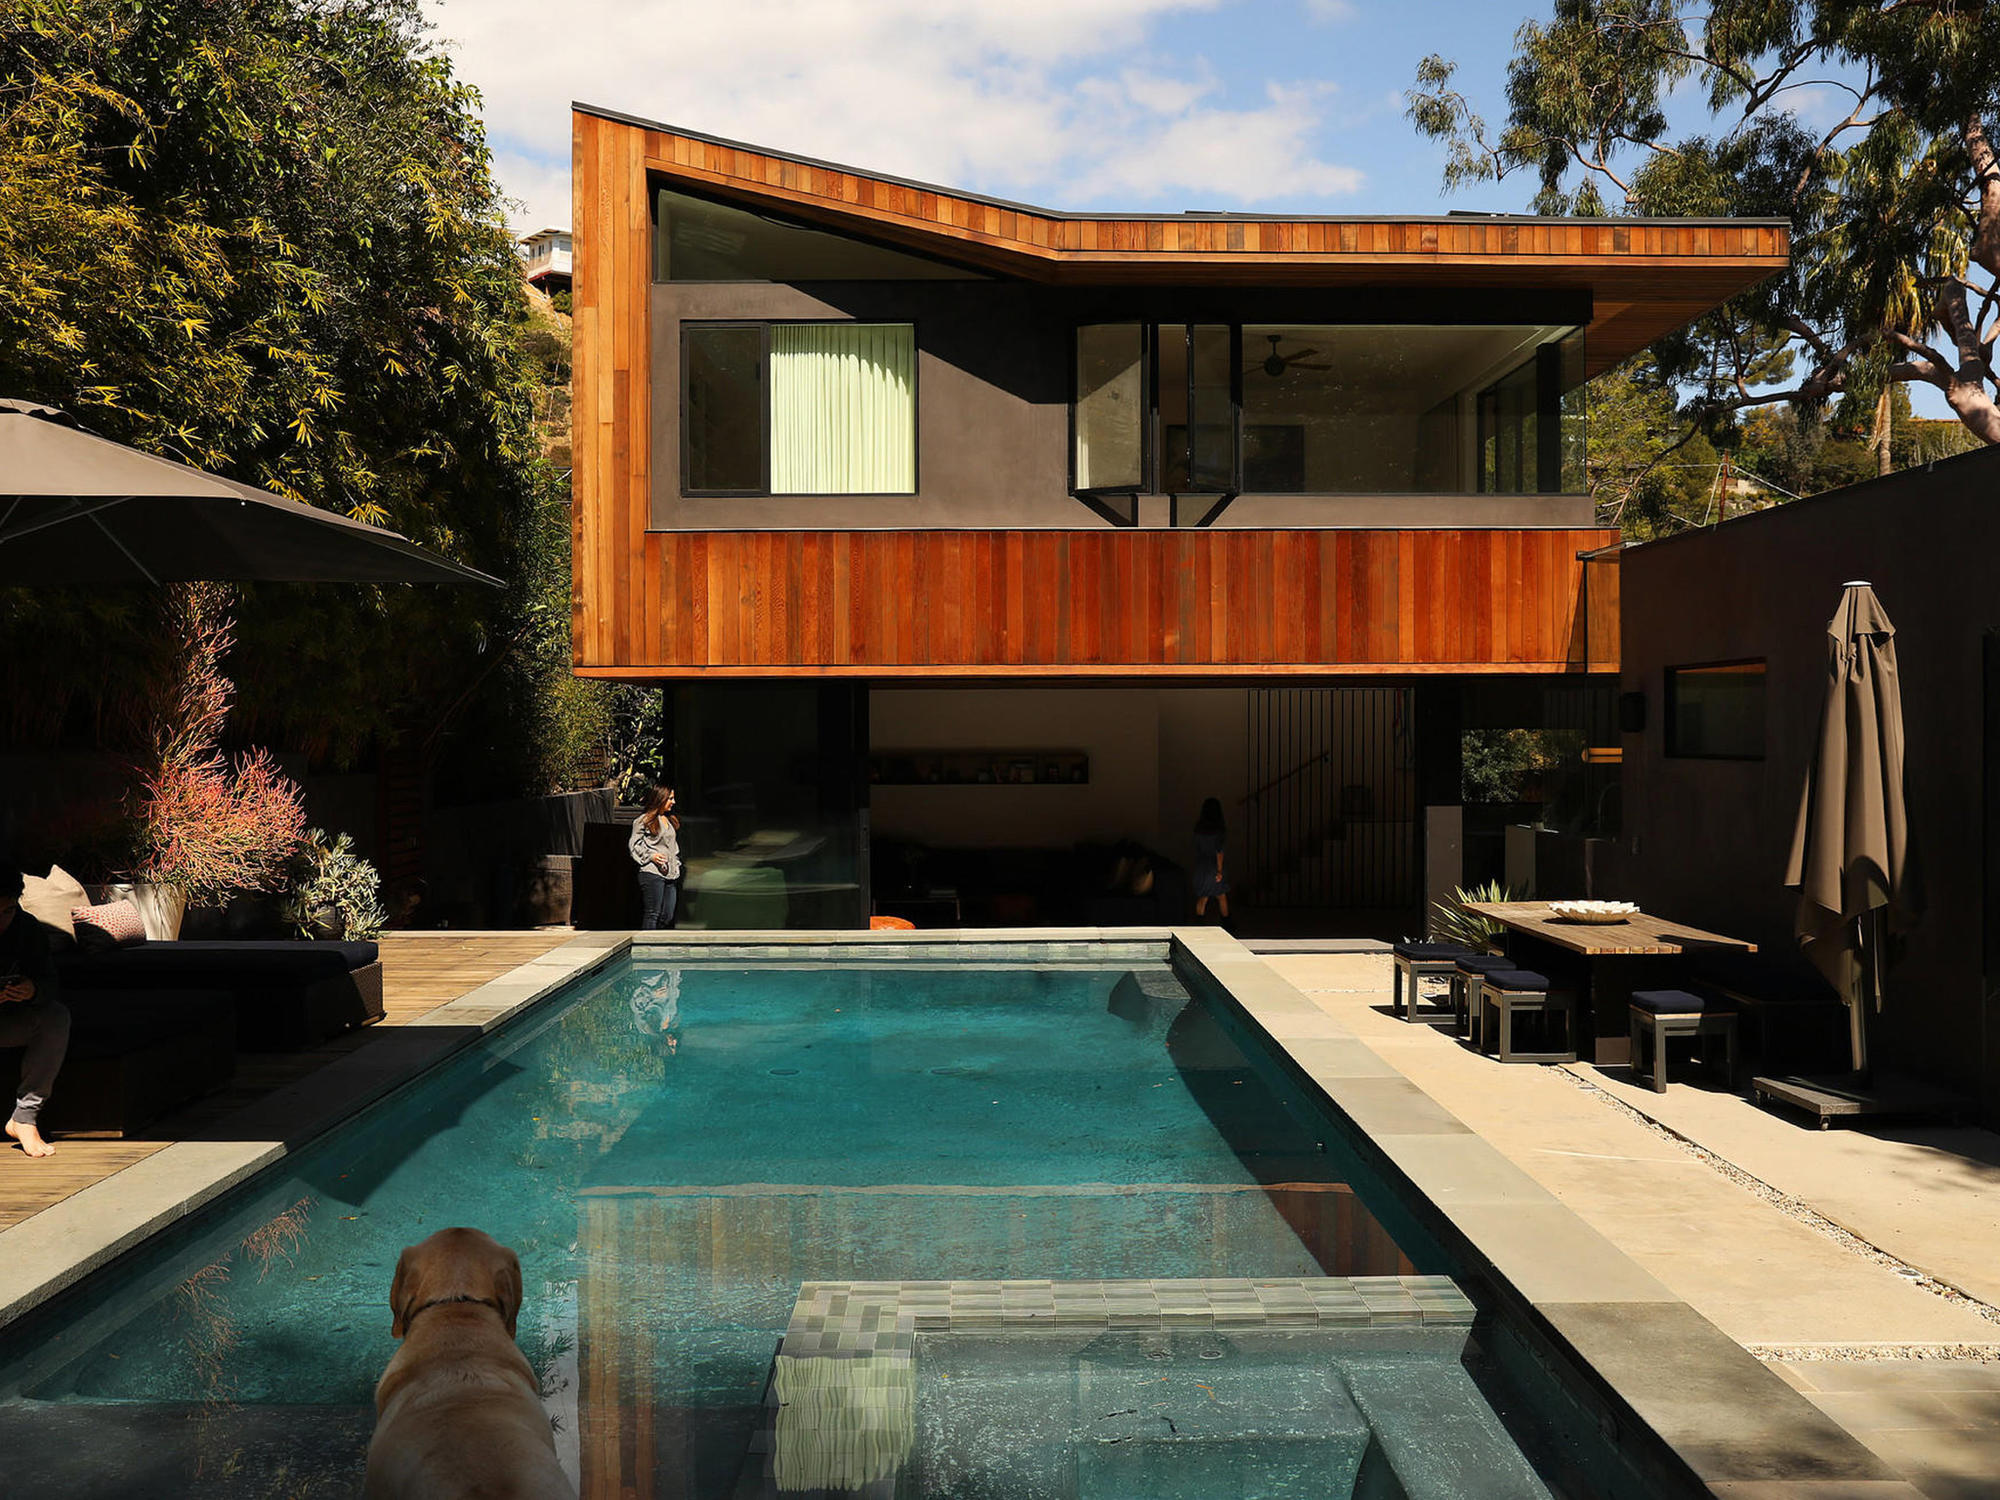 Yaniv and nina teppers new second floor master bedroom expands their view of laurel canyon christina house los angeles times